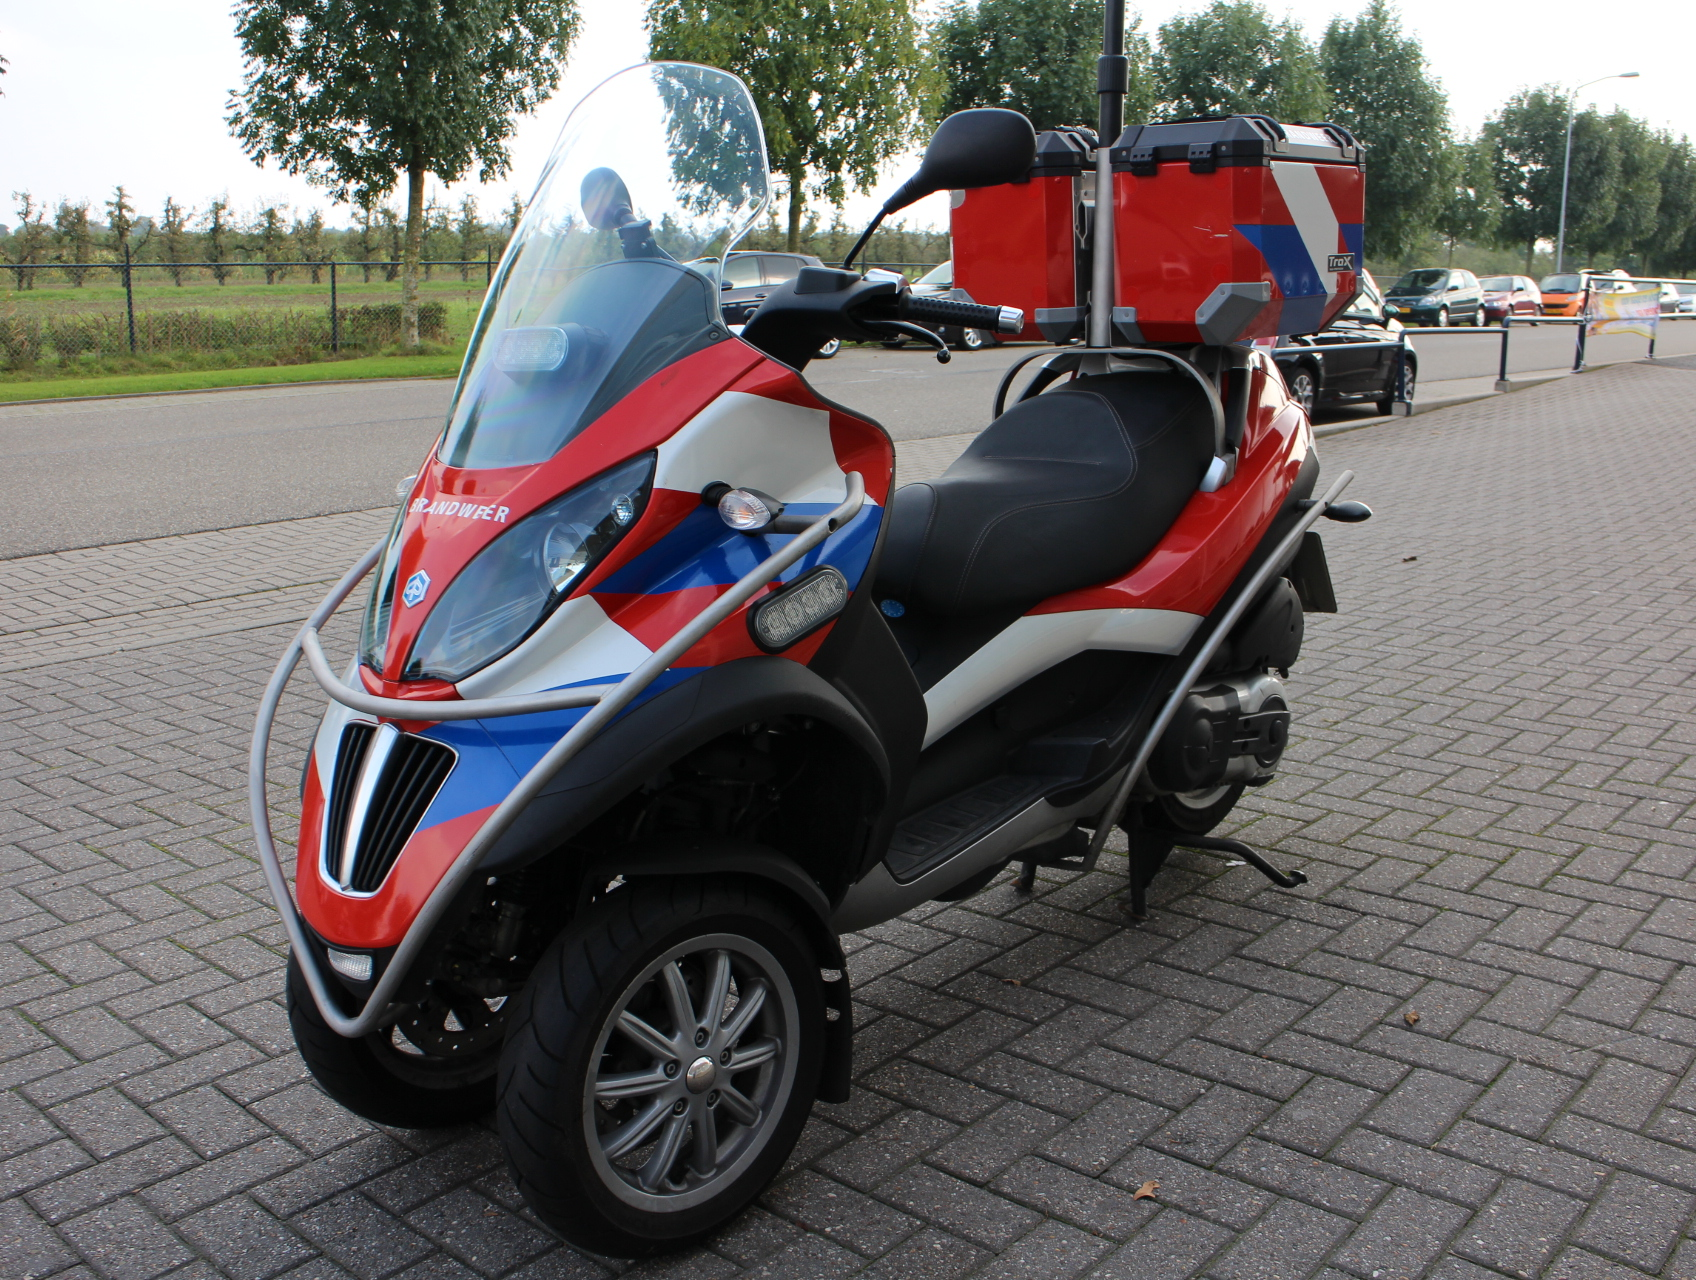 details piaggio scooter scooter 400 lt mp3 brandweer b rijbewijs. Black Bedroom Furniture Sets. Home Design Ideas